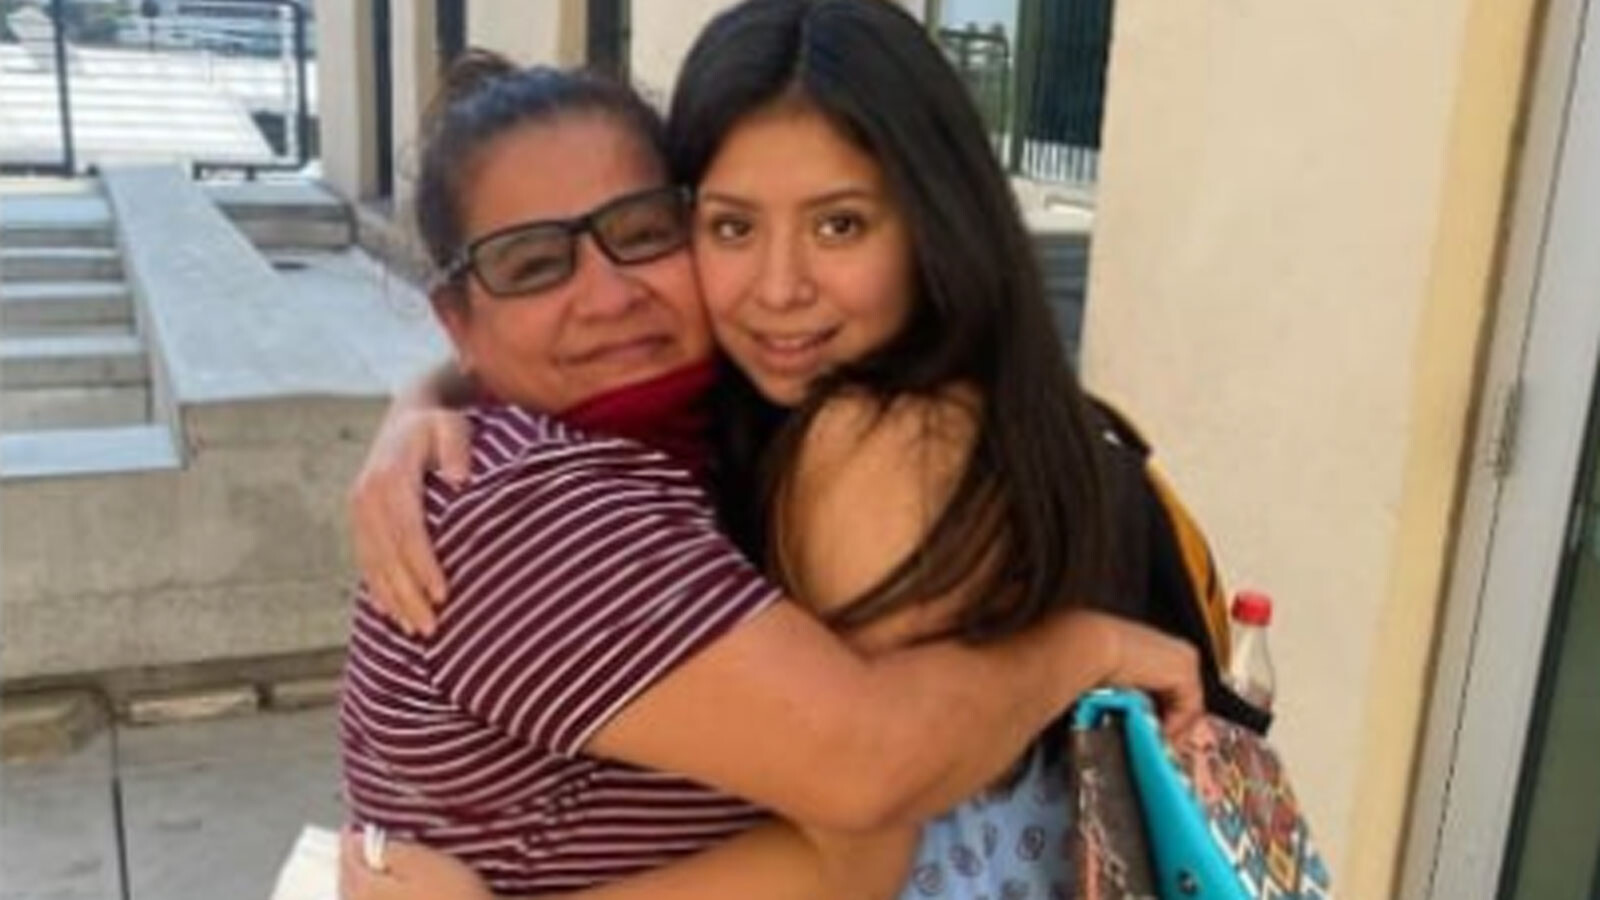 Florida mother reunited with daughter who was abducted in 2007 at the age of 6